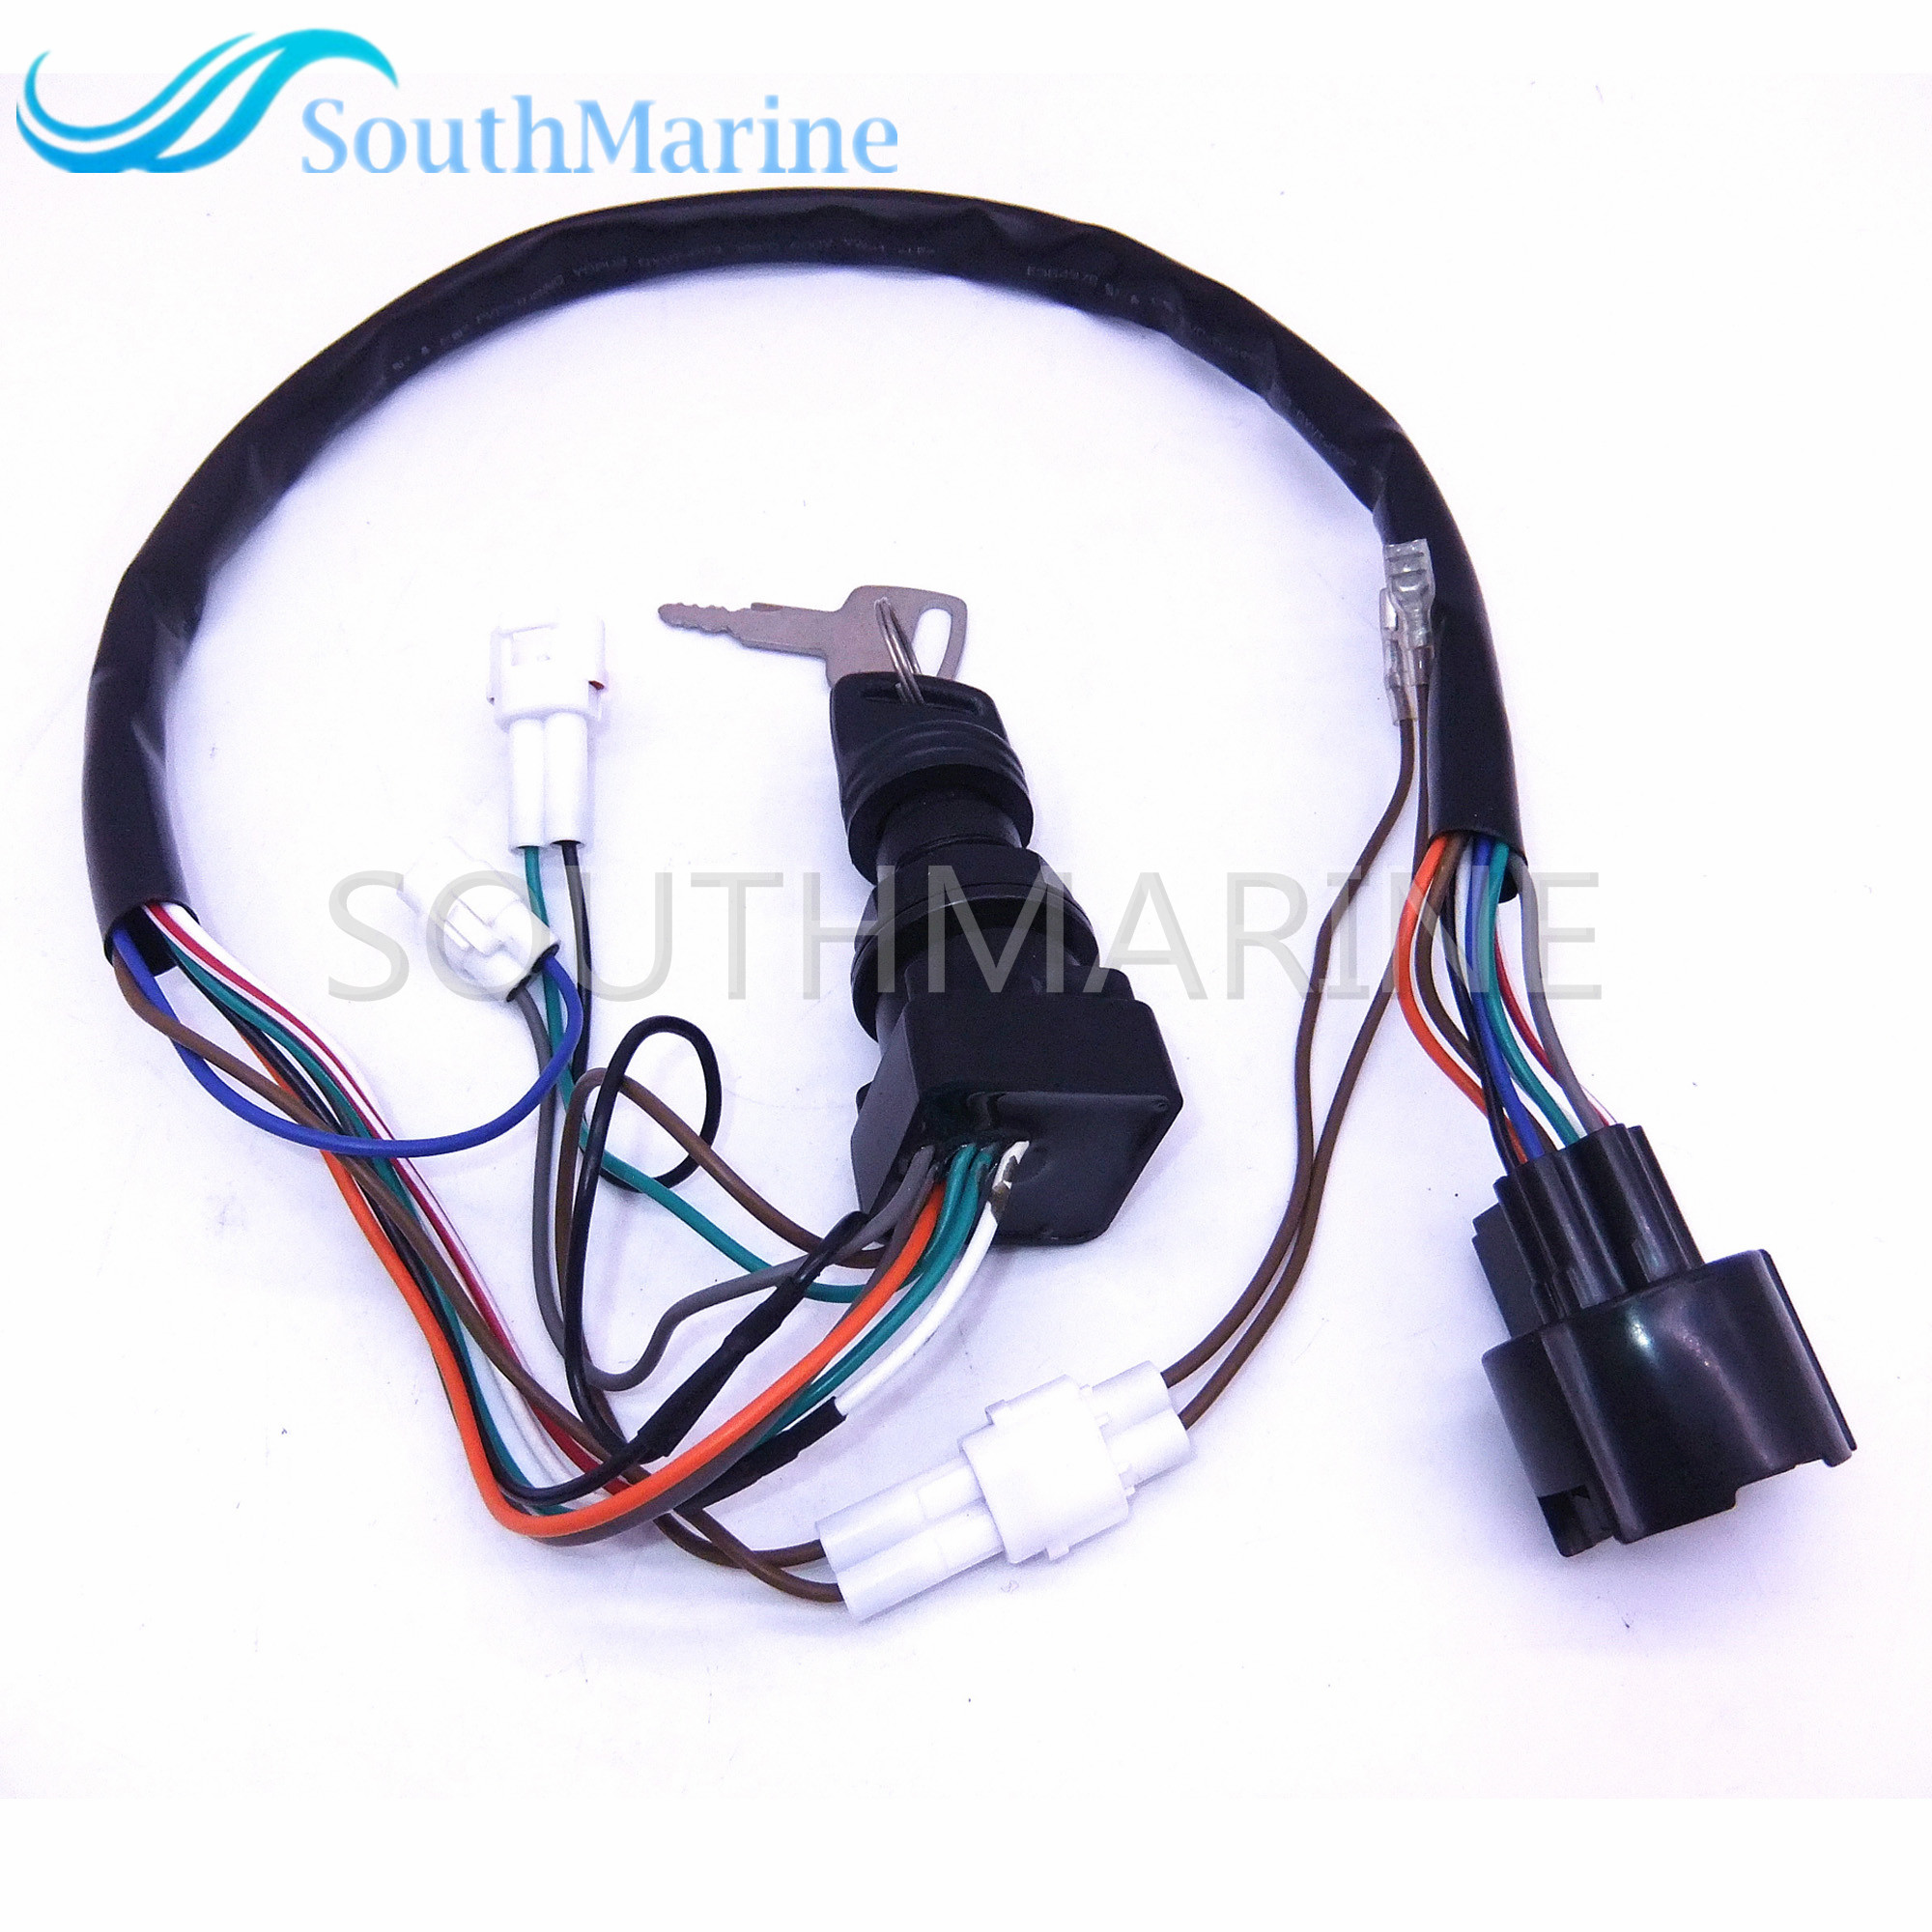 37110 93j00 37110 93j01 boat motor ignition switch assembly for suzuki outboard motor [ 2000 x 2000 Pixel ]